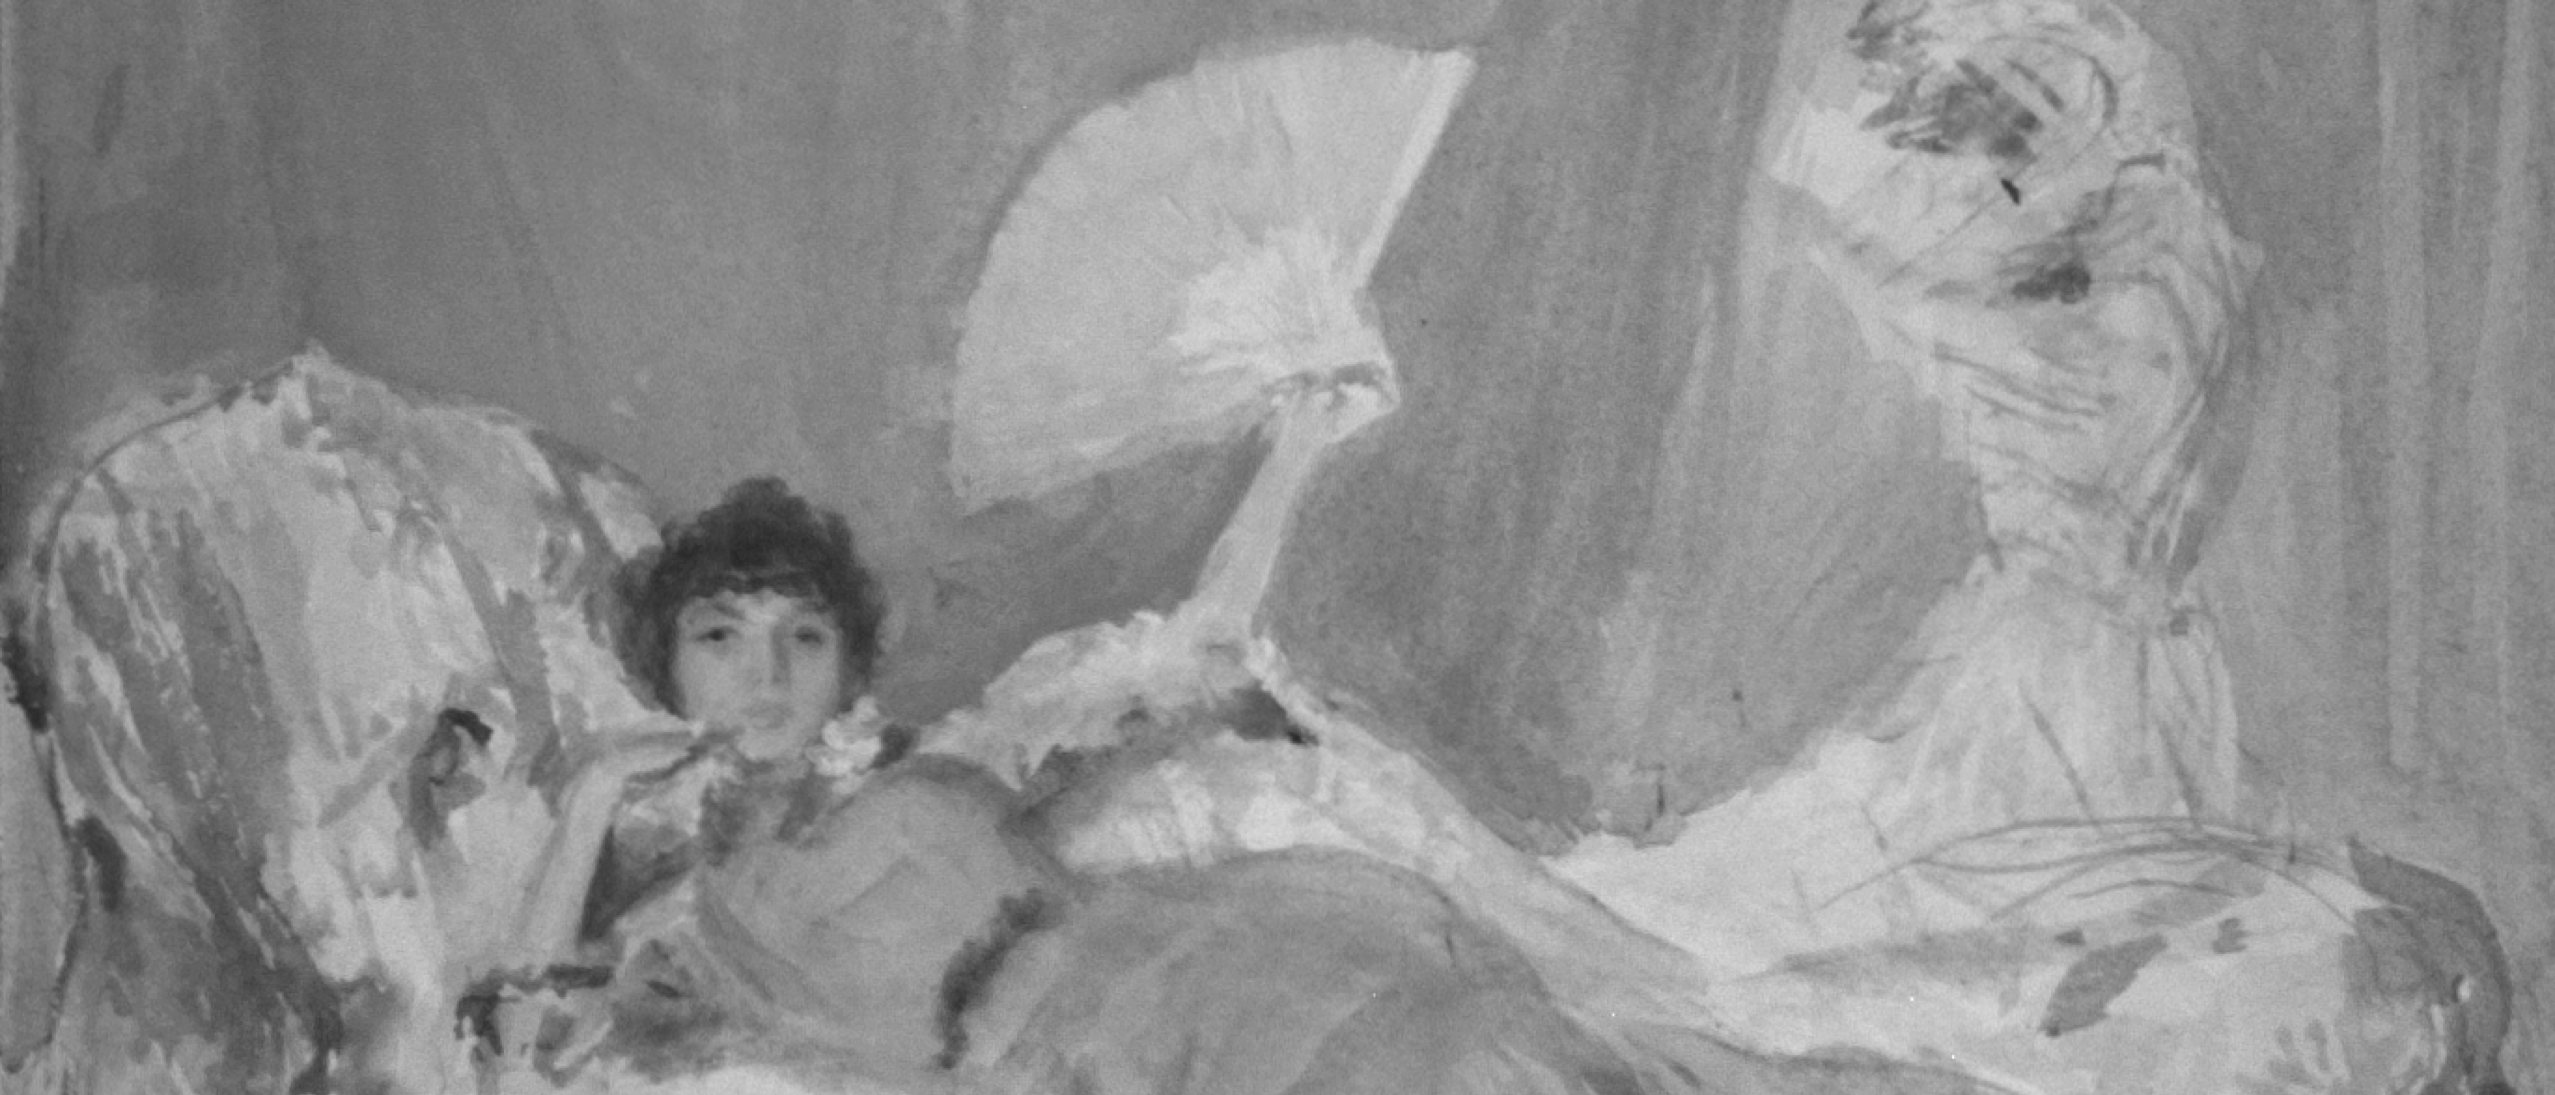 X-ray of a painting of a woman reclined on a chaise lounge holding a fan